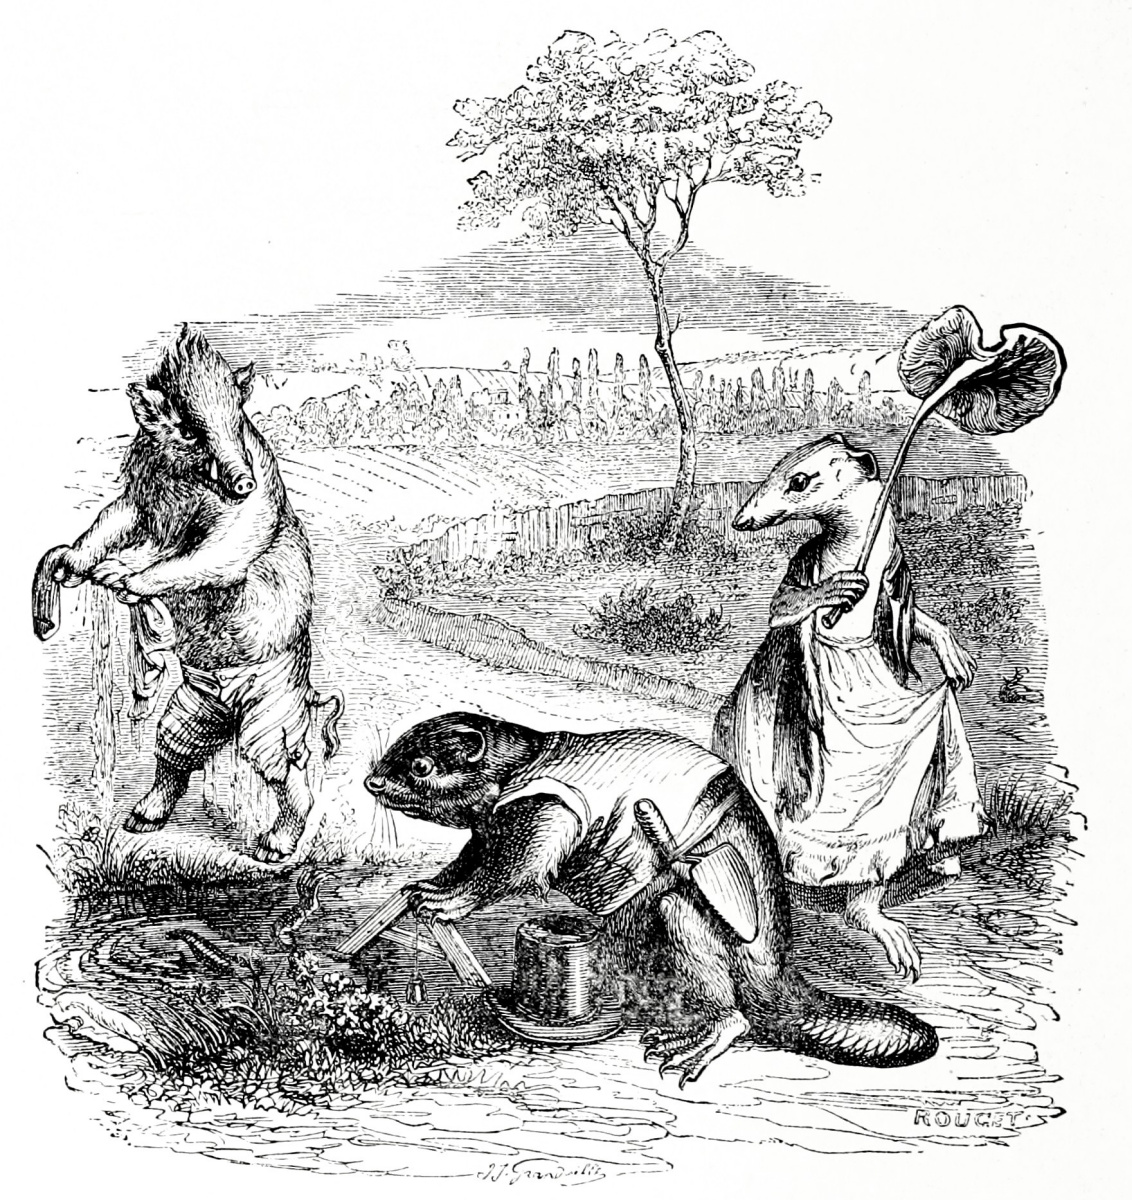 Jean Inias Isidore (Gerard) Granville. Three types of luck: Gornostay, Beaver and Boar. Illustrations to the fables of Florian